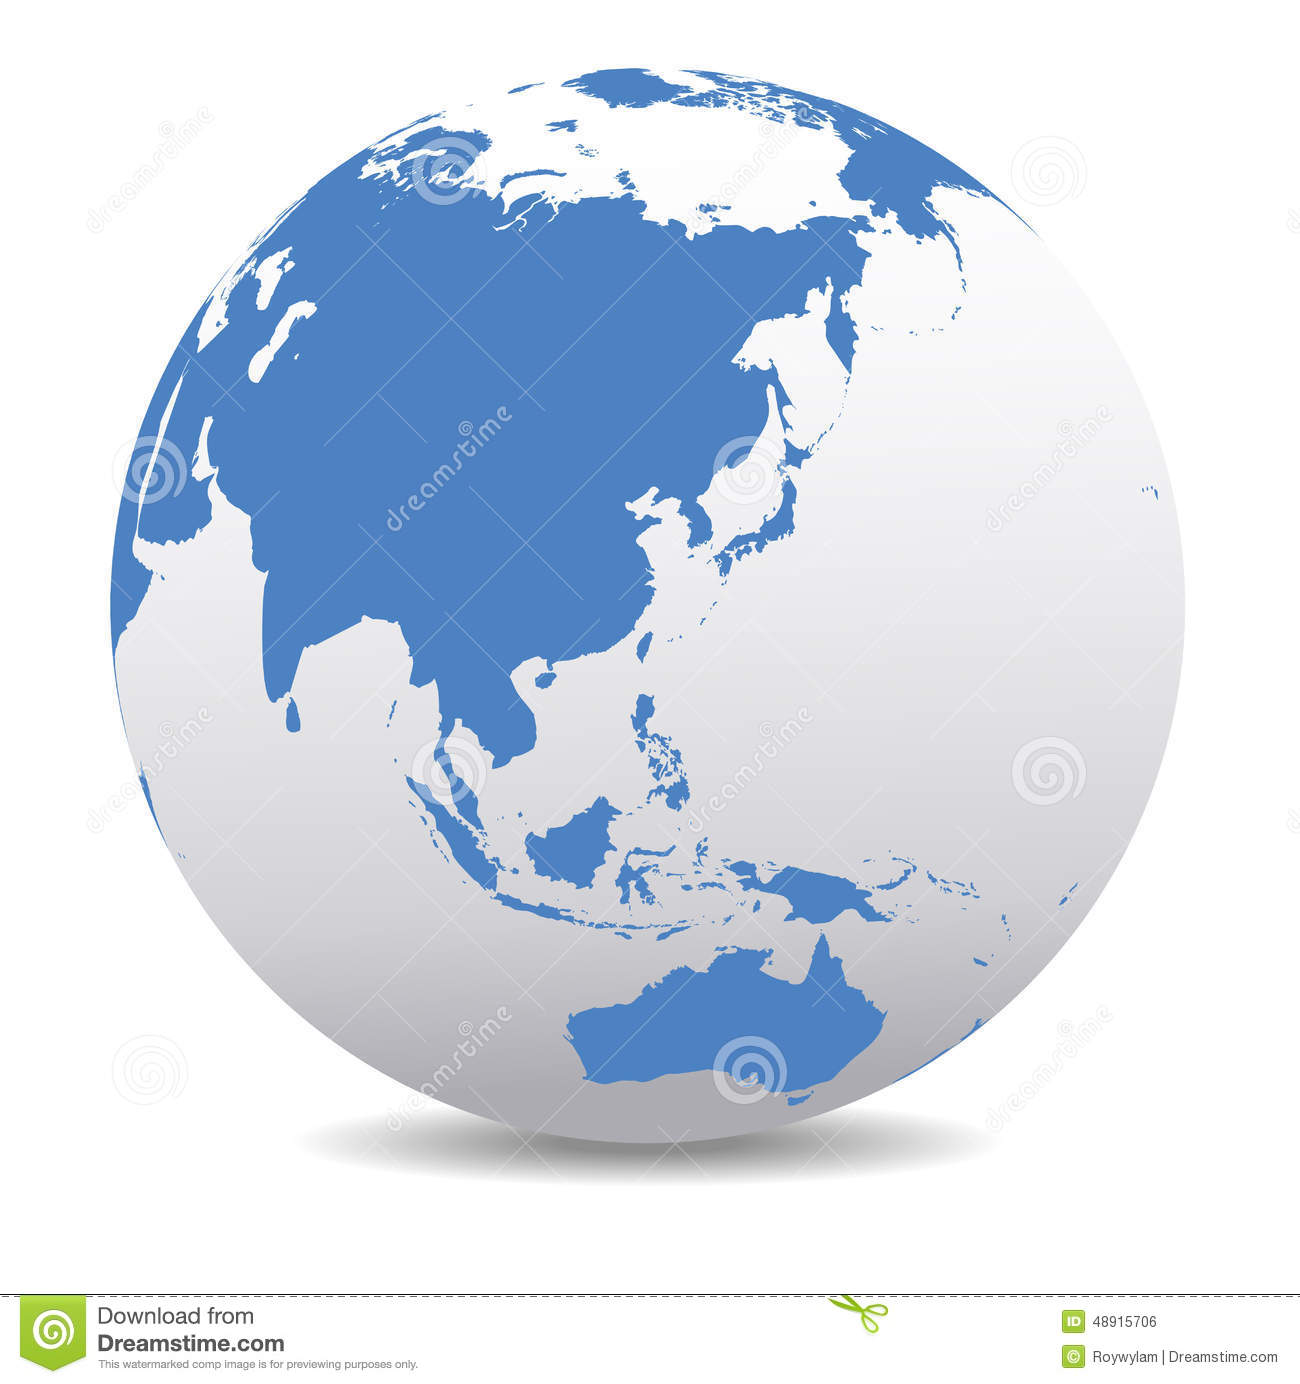 China japan malaysia thailand indonesia global world stock china japan malaysia thailand indonesia global world royalty free vector gumiabroncs Images